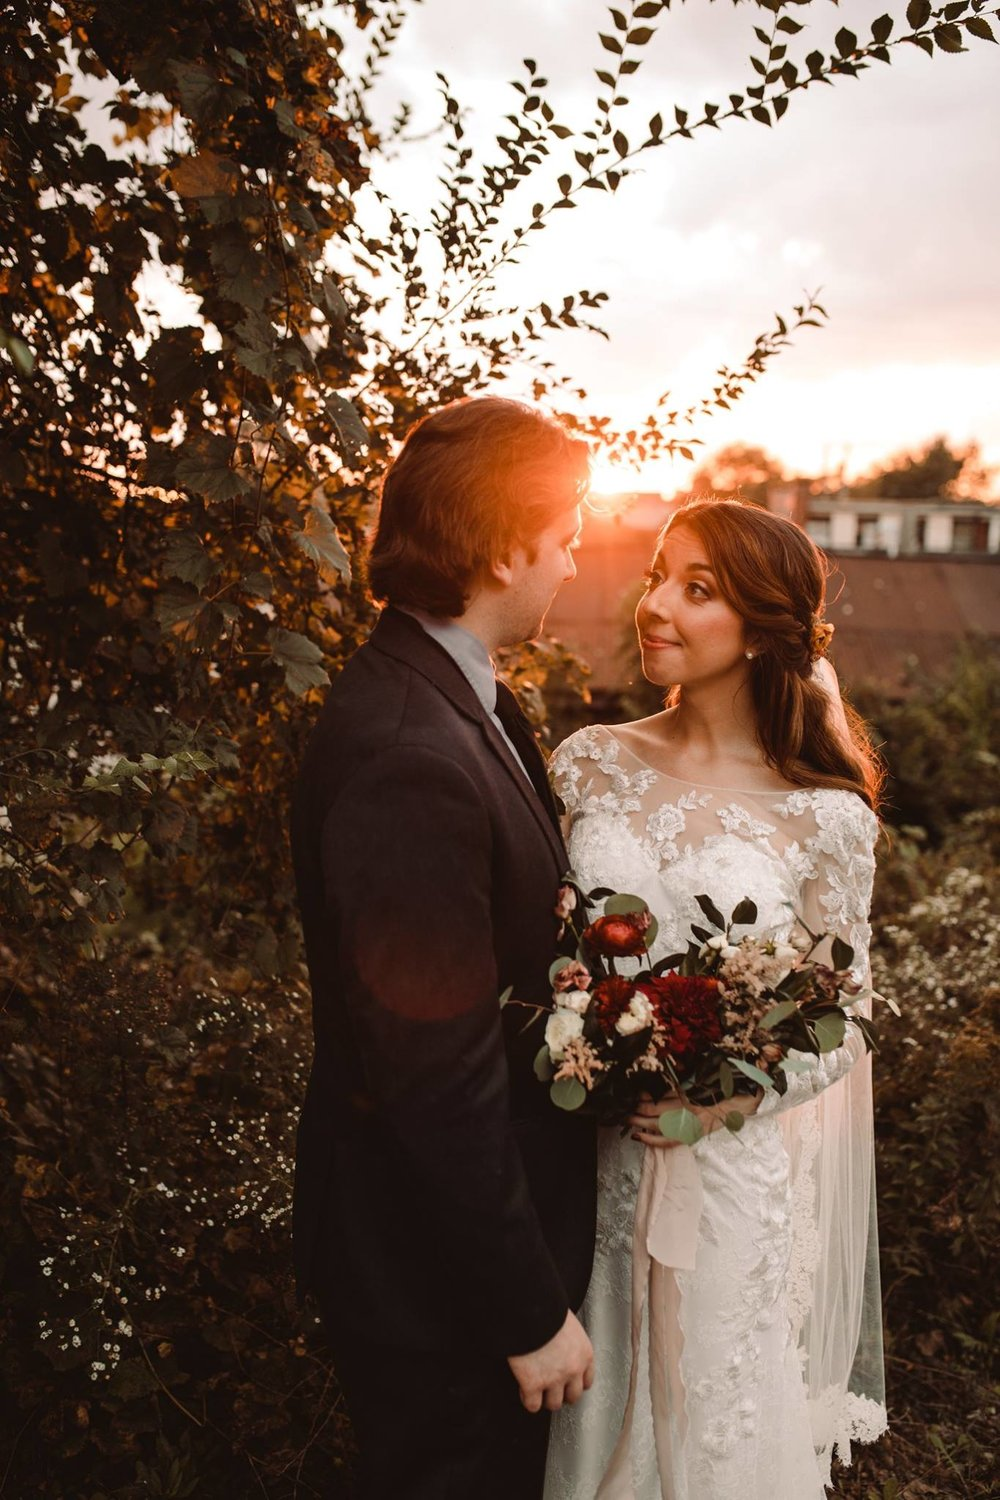 """- """"Caroline is down to earth, creative, and committed to making your special day unforgettable. Don't hesitate - book her now! ❤️""""-Elizabeth & Sean"""